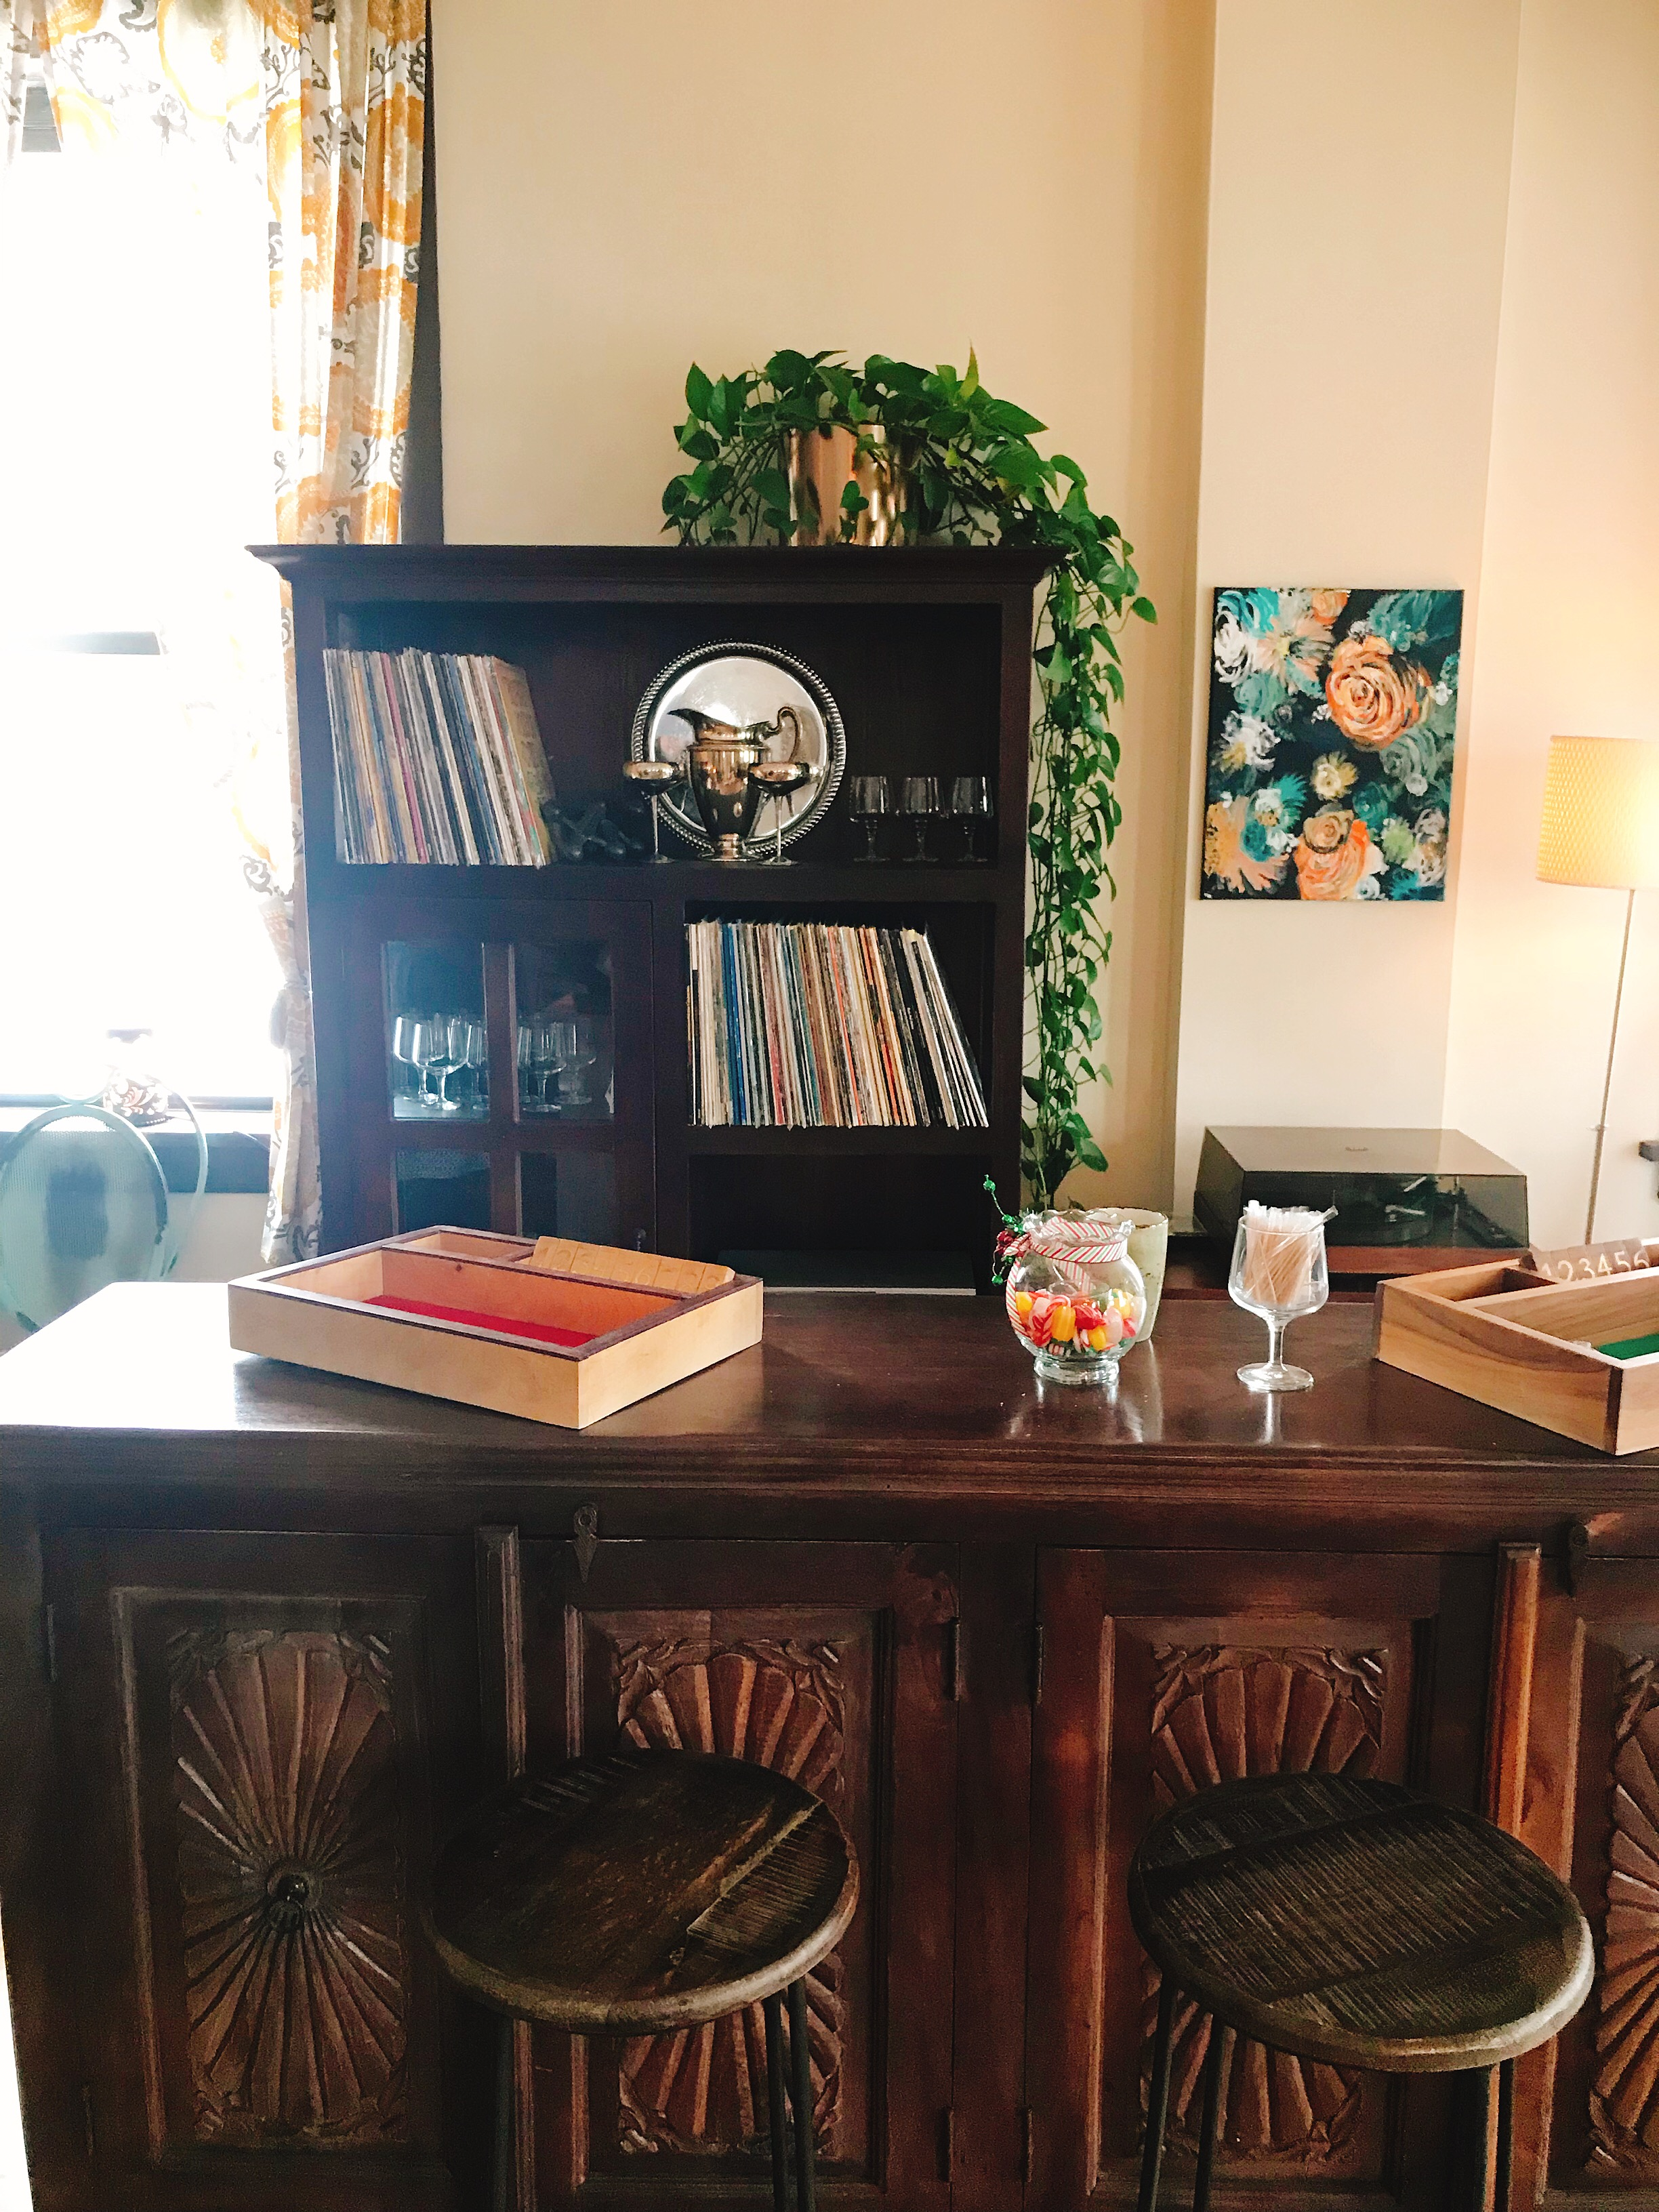 Band of Bohemia parlor complete with turntable and extensive vinyl selection